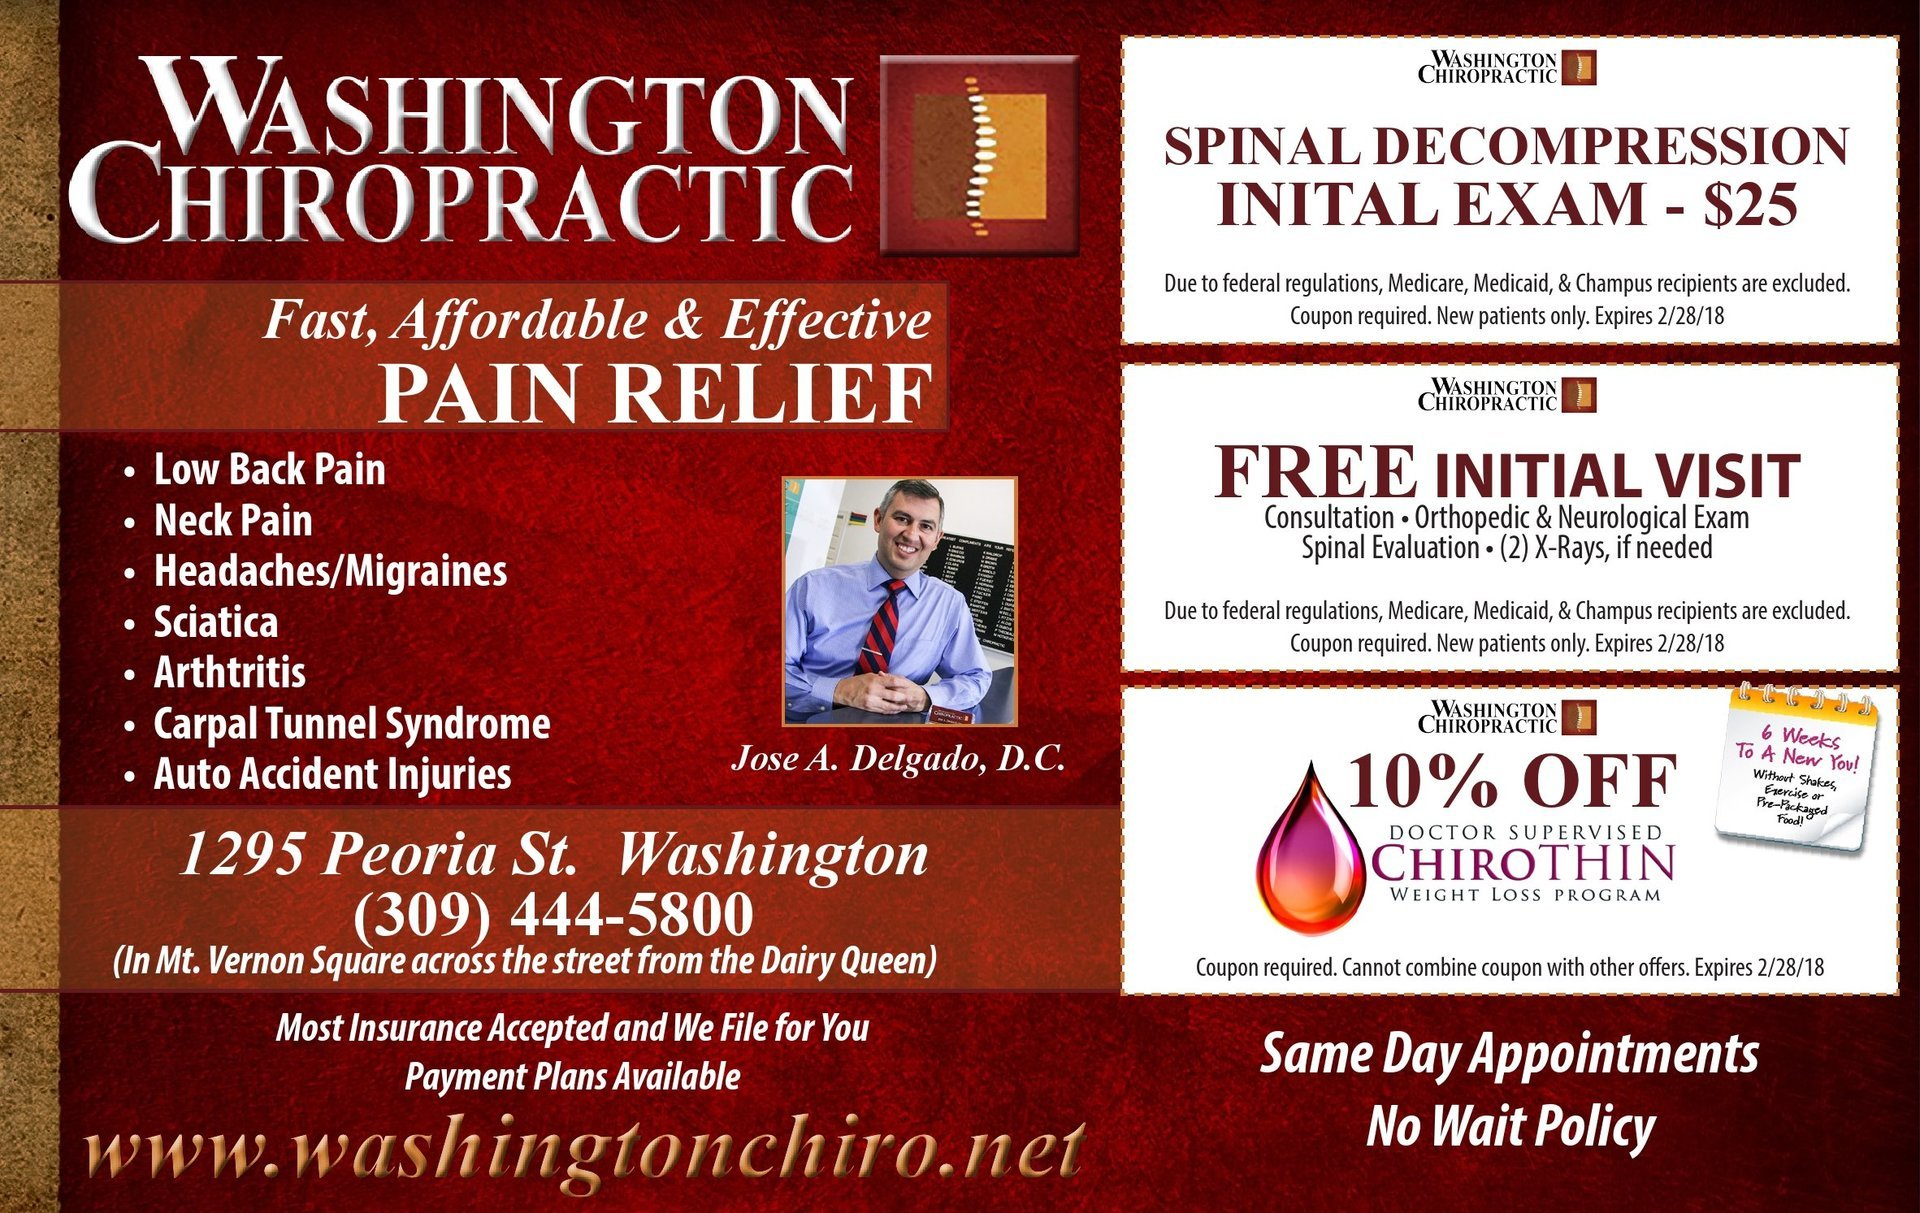 Washington Chiropratic pain relief spinal decompression, free visit, weightloss coupons Washington, IL